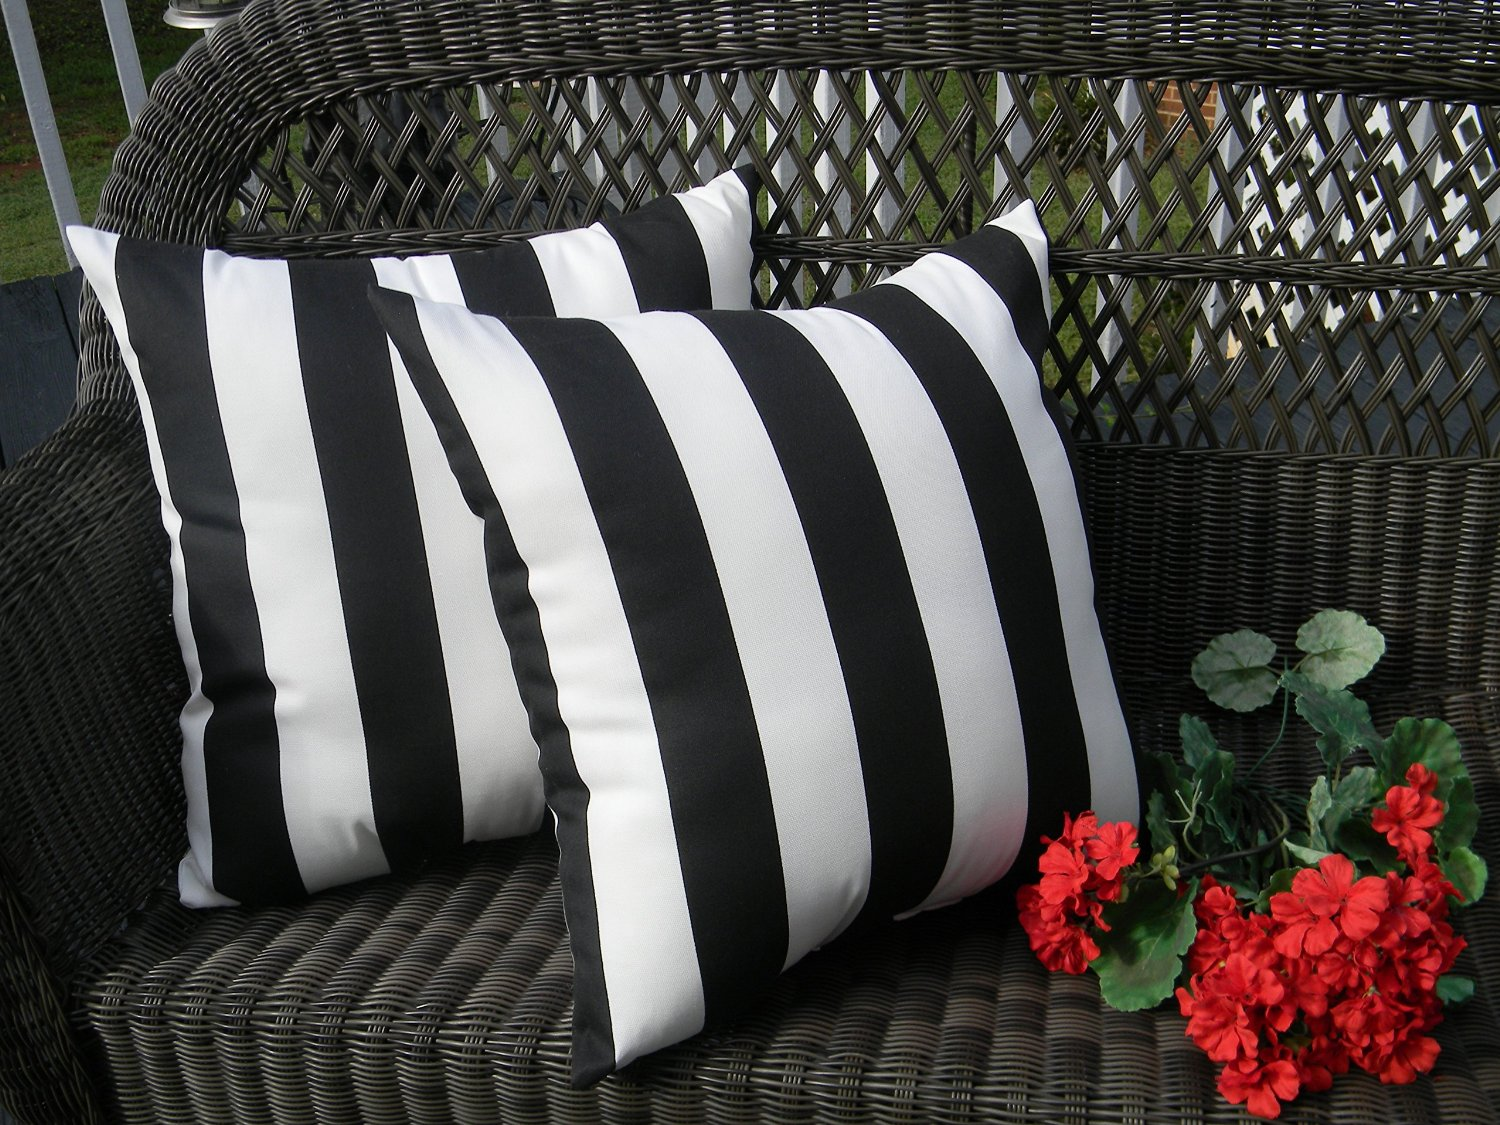 Patio Refresh! Get Your Outdoor Space Summer Ready